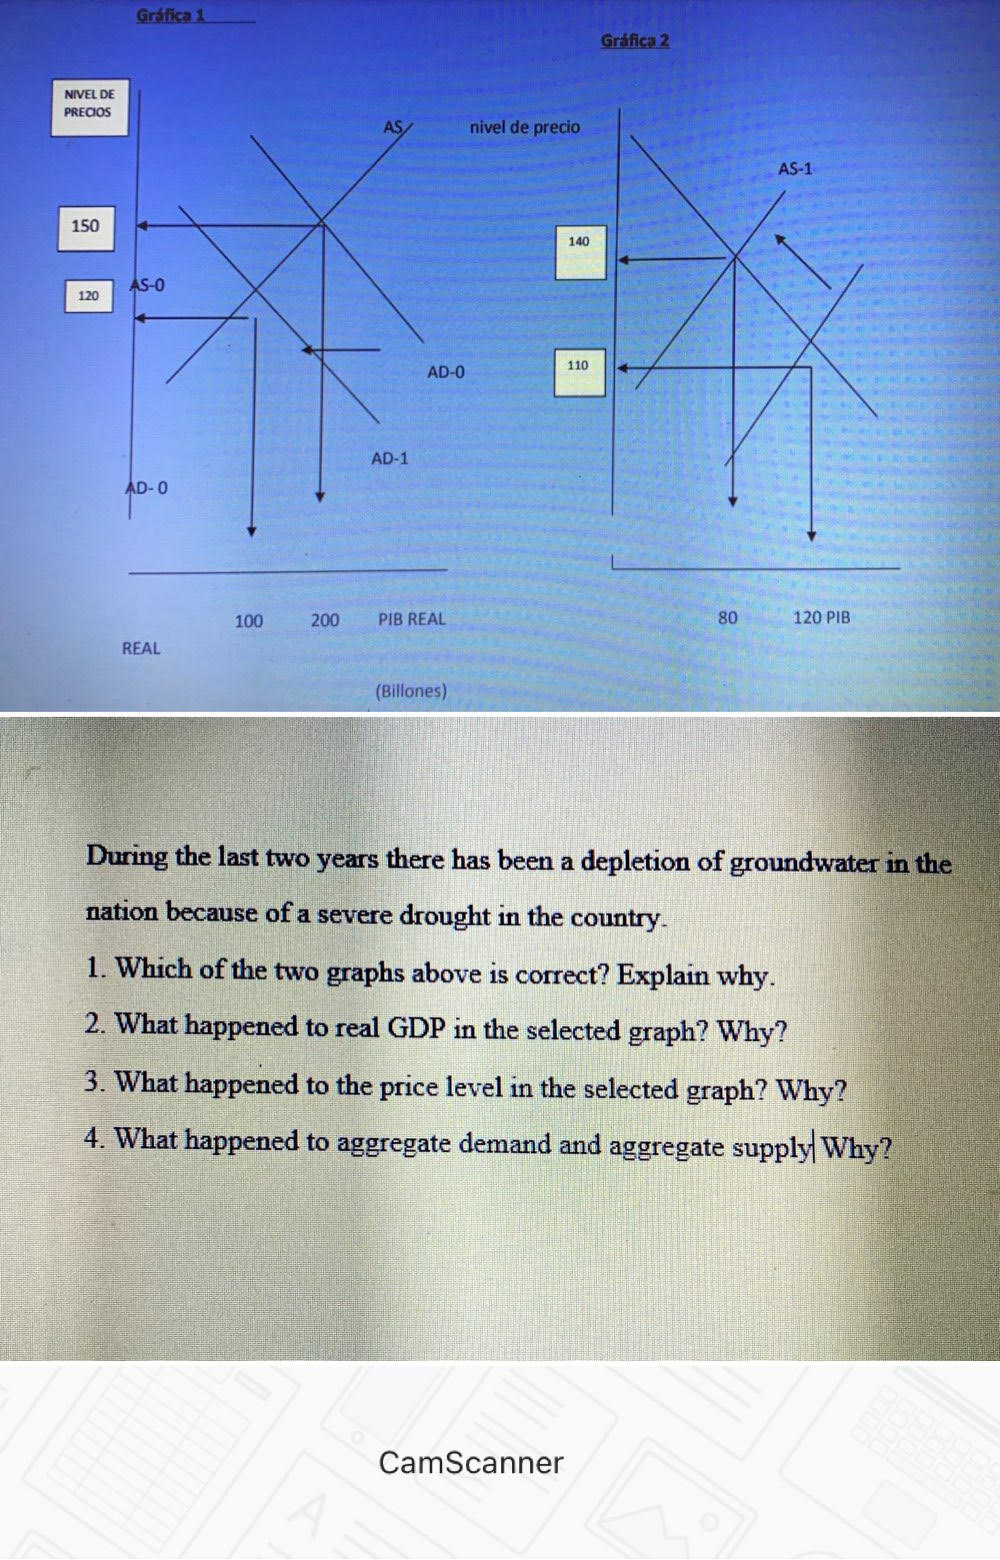 During the last two years there has been a depletion of groundwater in the nation because of a severe drought in the country. 1. Which of the two graphs above is correct? Explain why. 2. What happened to real GDP in the selected graph? Why? 3. What happened to the price level in the selected graph? Why? 4. What happened to aggregate demand and aggregate supply Why?